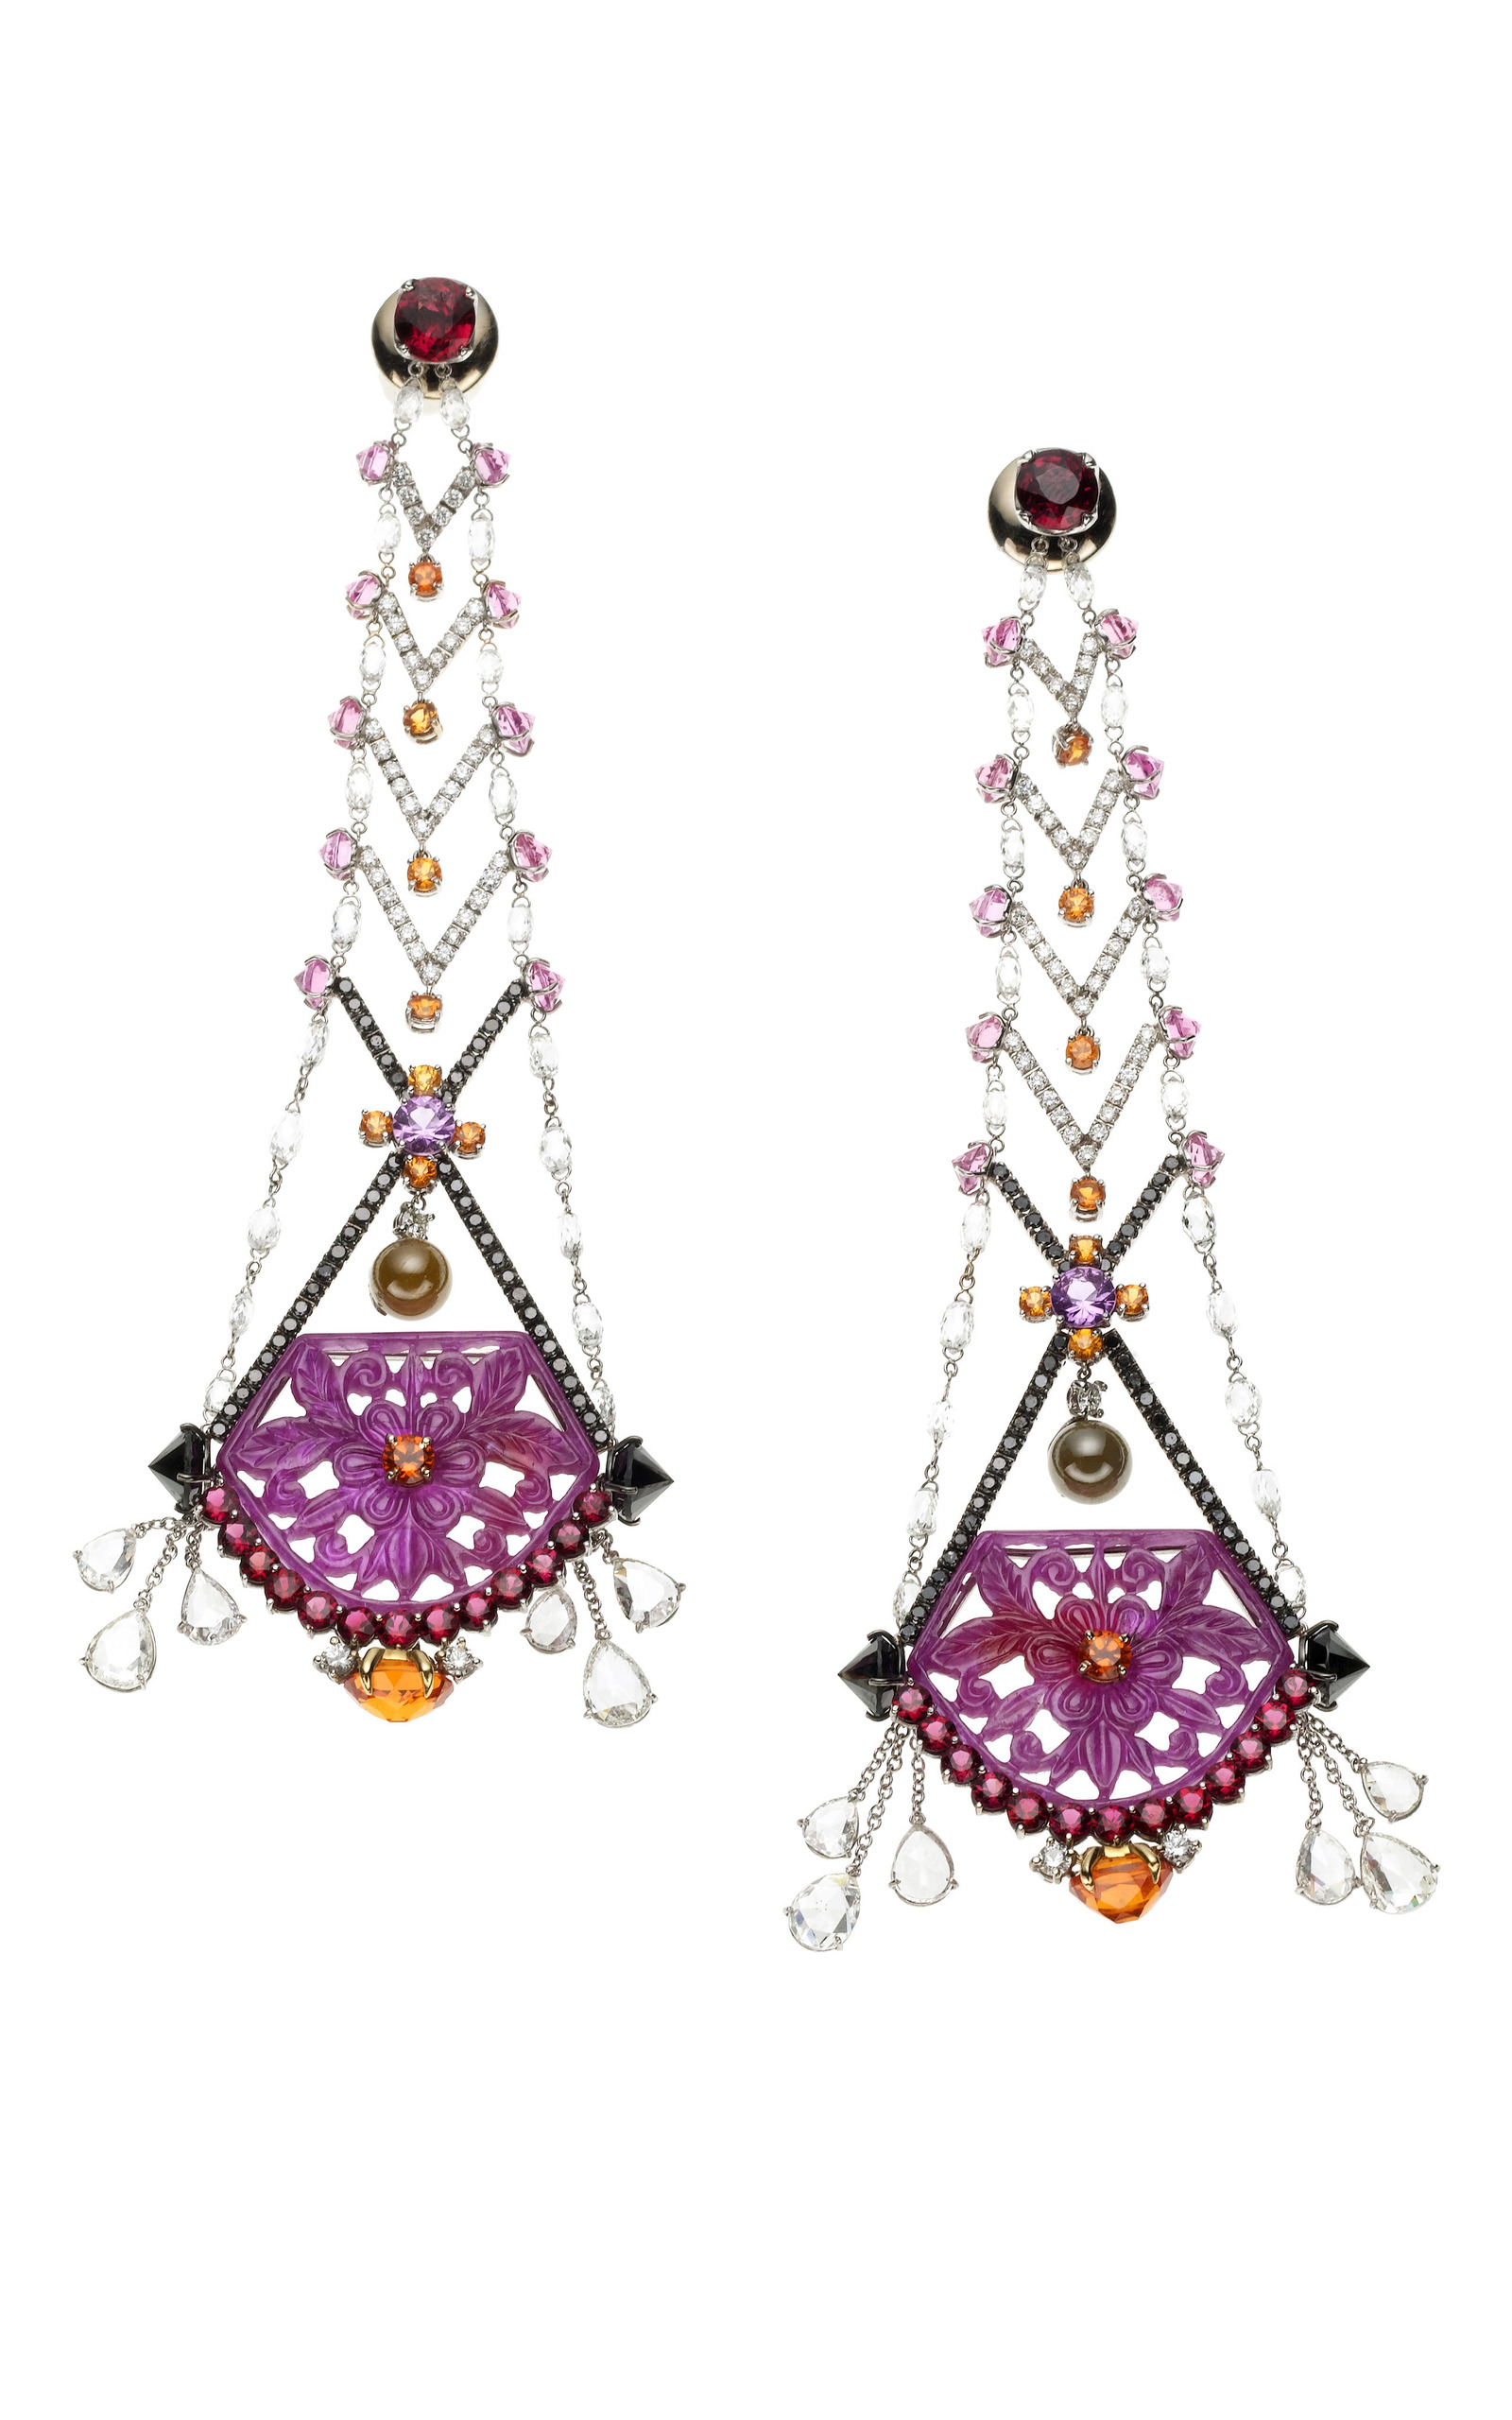 Floral Statement Earrings By Vbh Moda Operandi